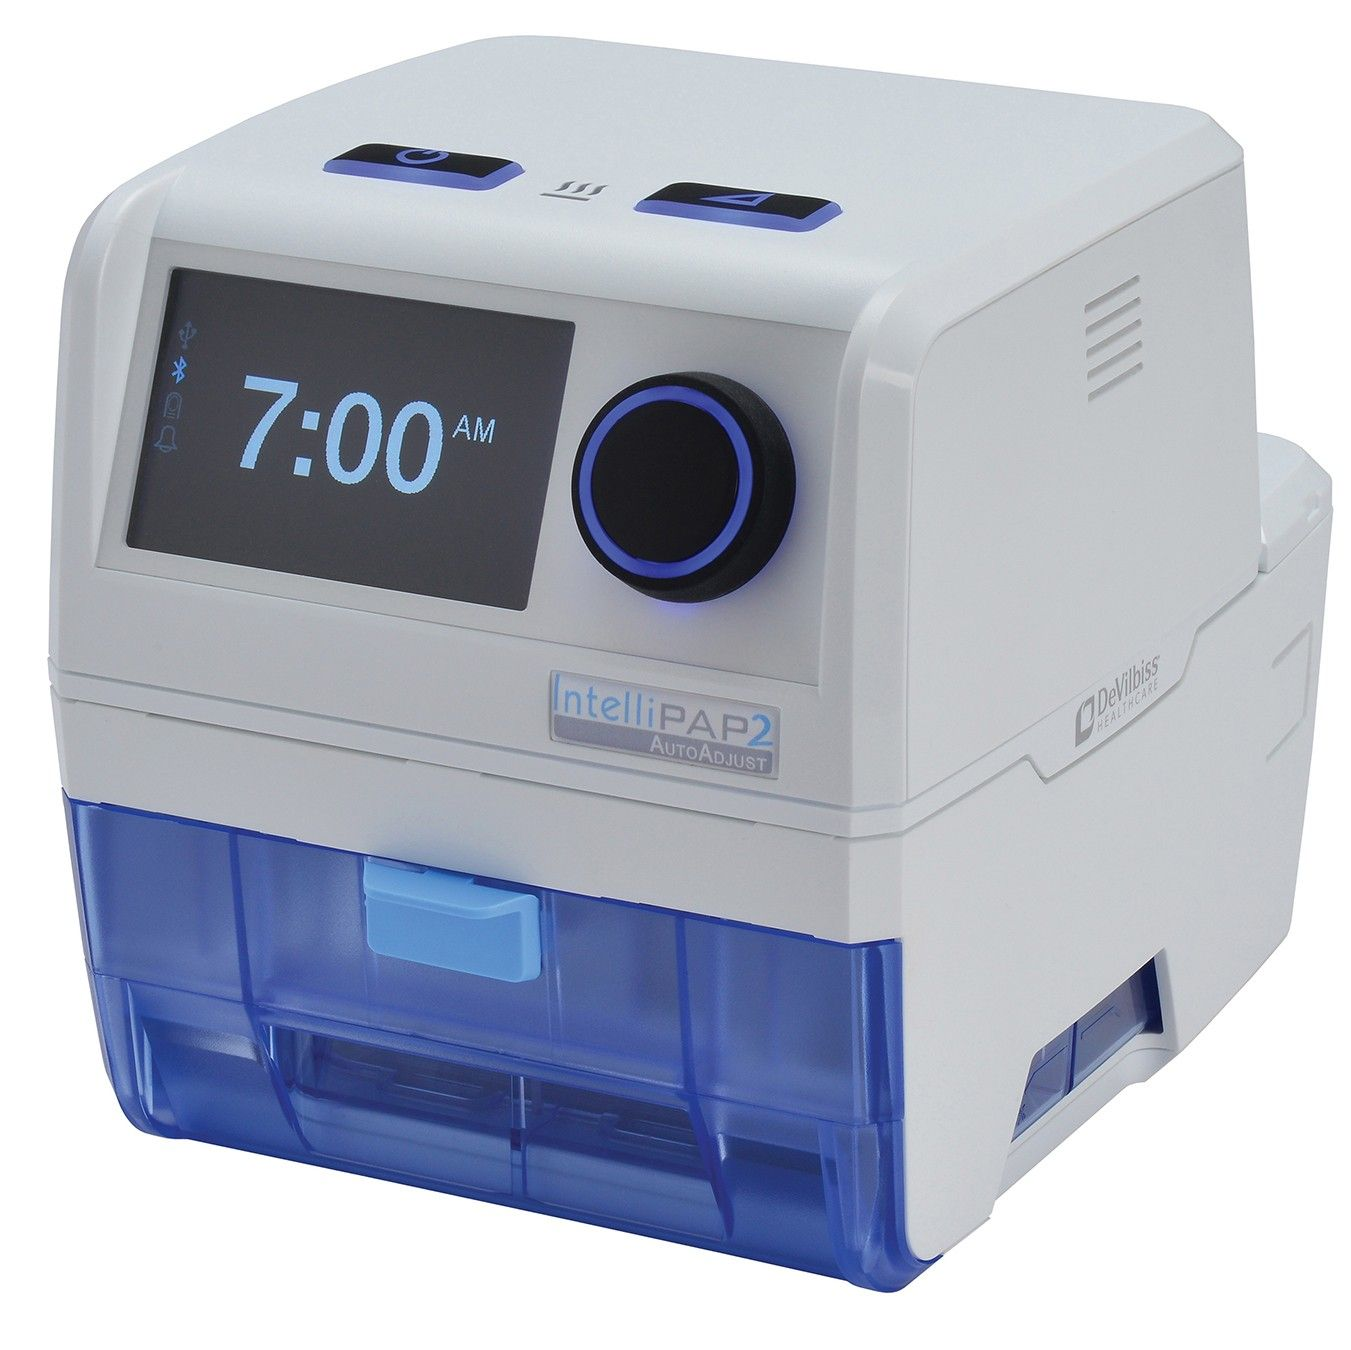 IntelliPAP 2 AutoAdjust CPAP System designed to